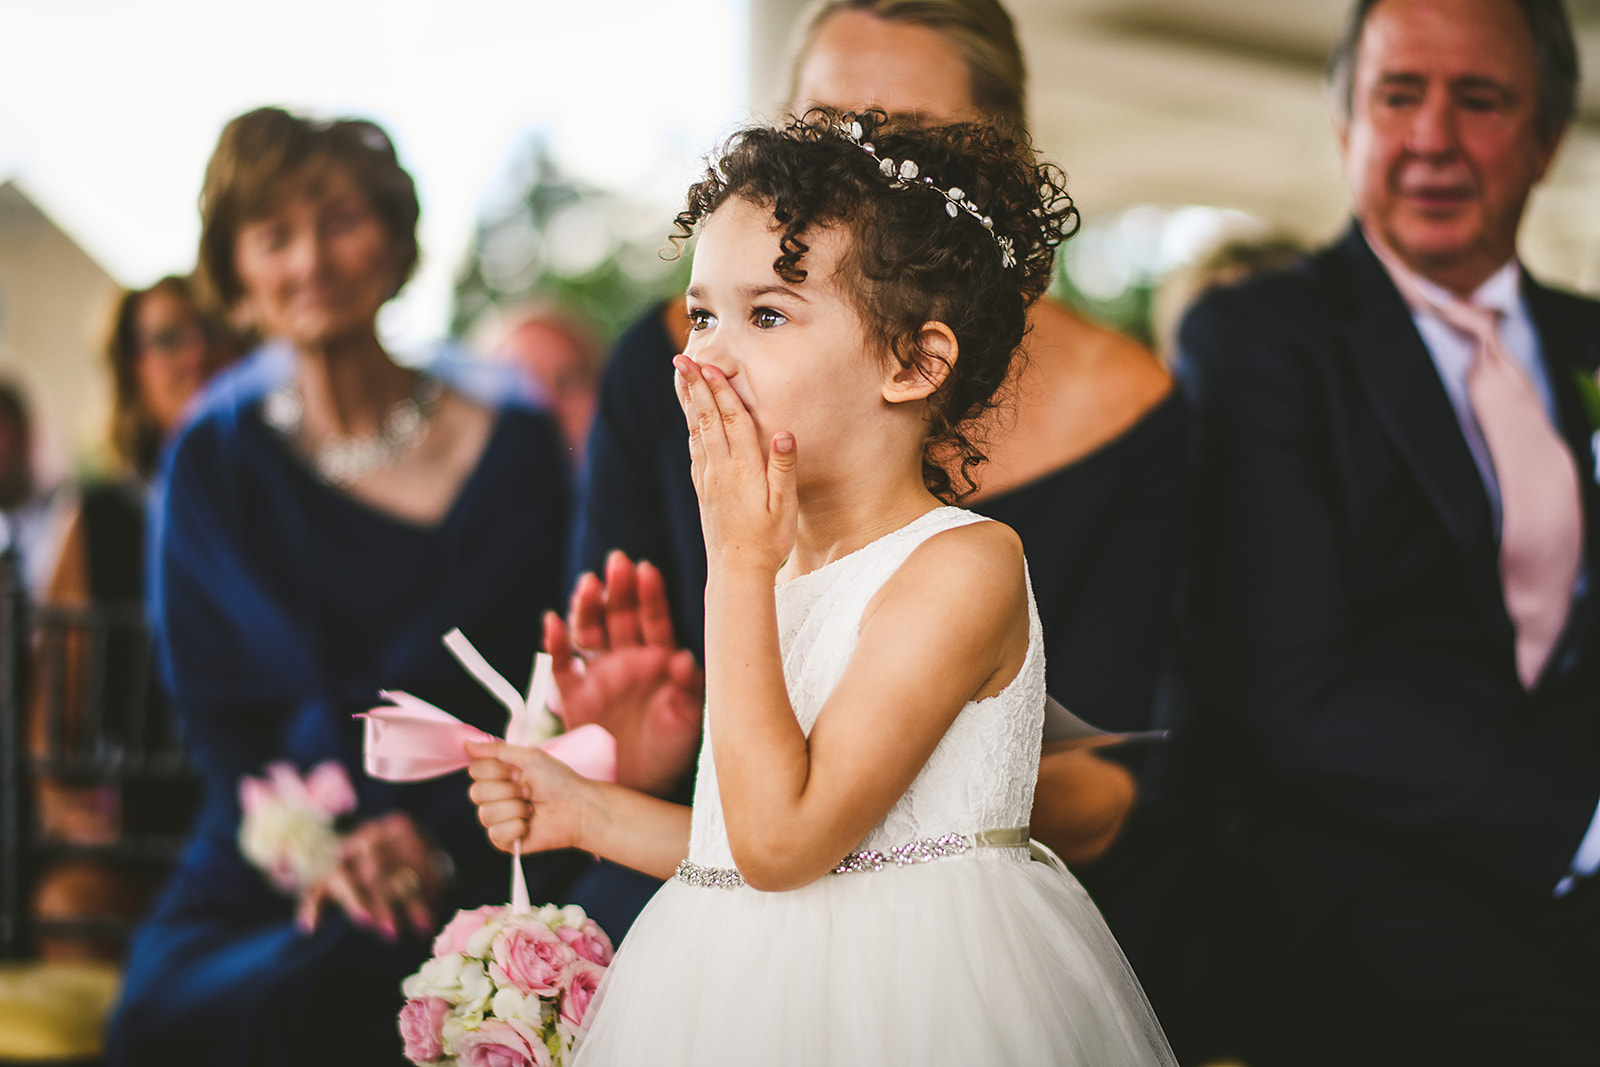 Atelier Ashley Flowers + Sam Hurd Photography + Washington Golf and Country Club + Diamond and Pearl Wedding + flower girl flowers + flower girl ideas + flower girl dress